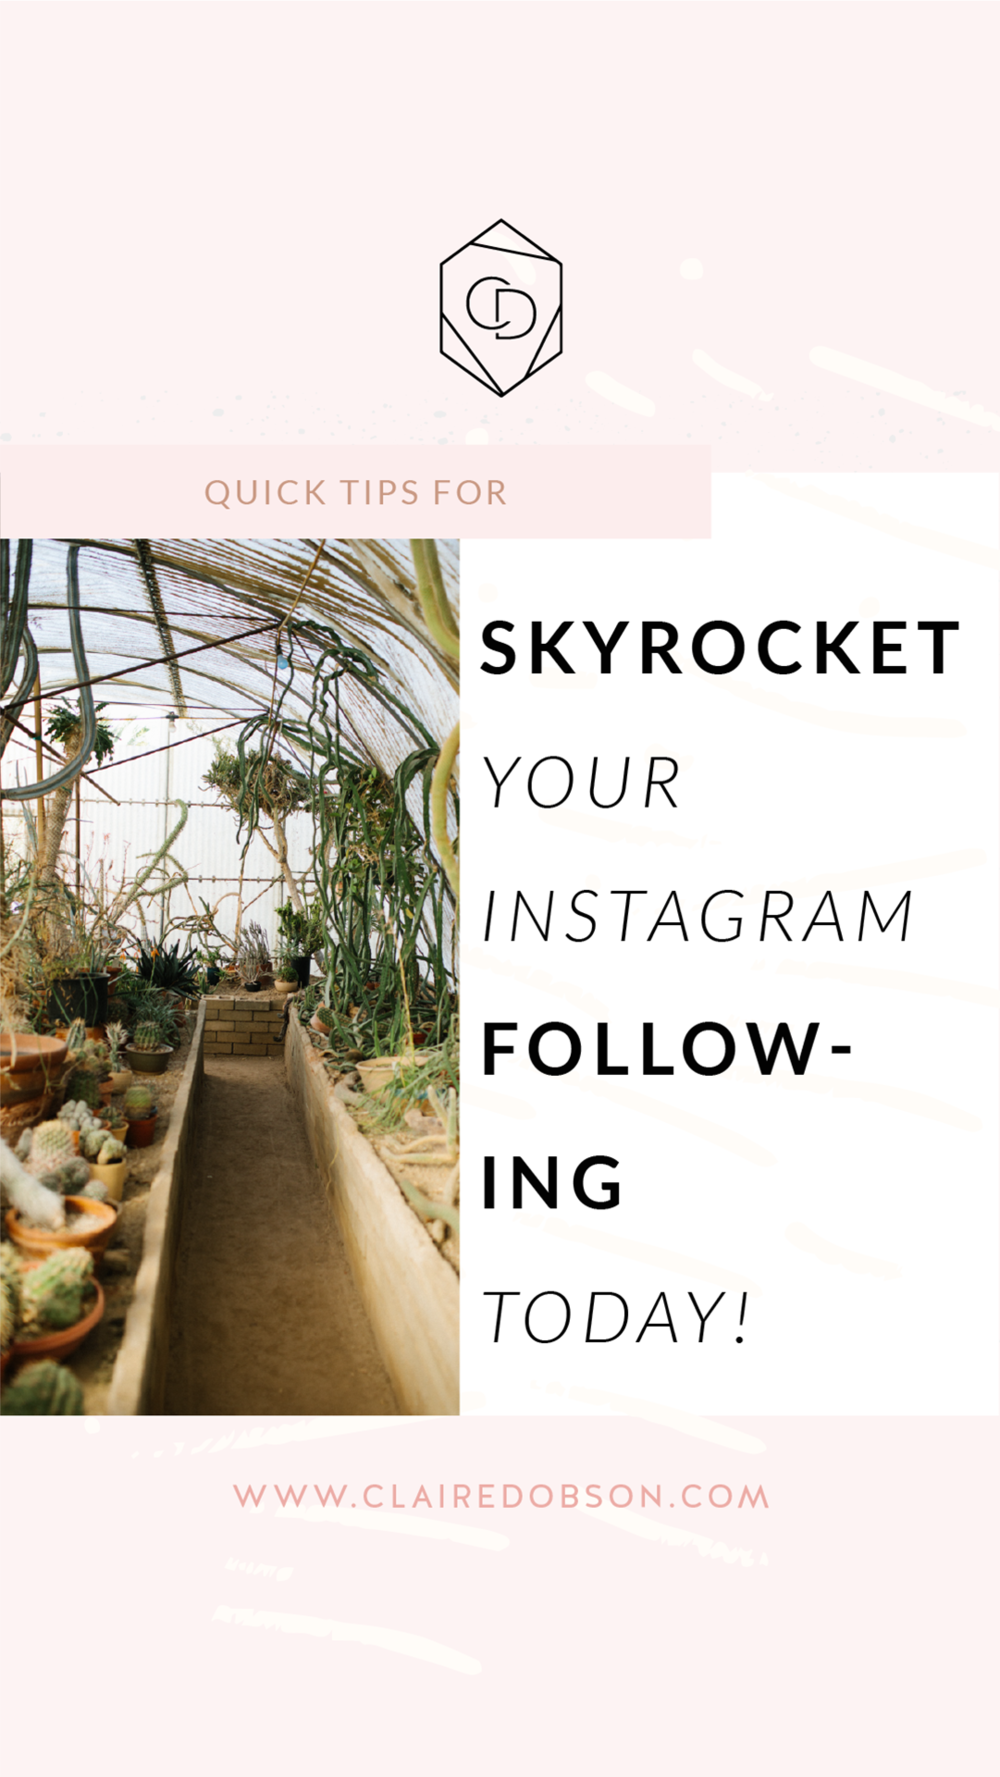 The best Instagram tools and websites to grow your followers. How to grow your Instagram followers with the best apps, websites and resources. #instagramtips #socialmediamarketing #socialmediamanagement #brandingtips #contentmarketing